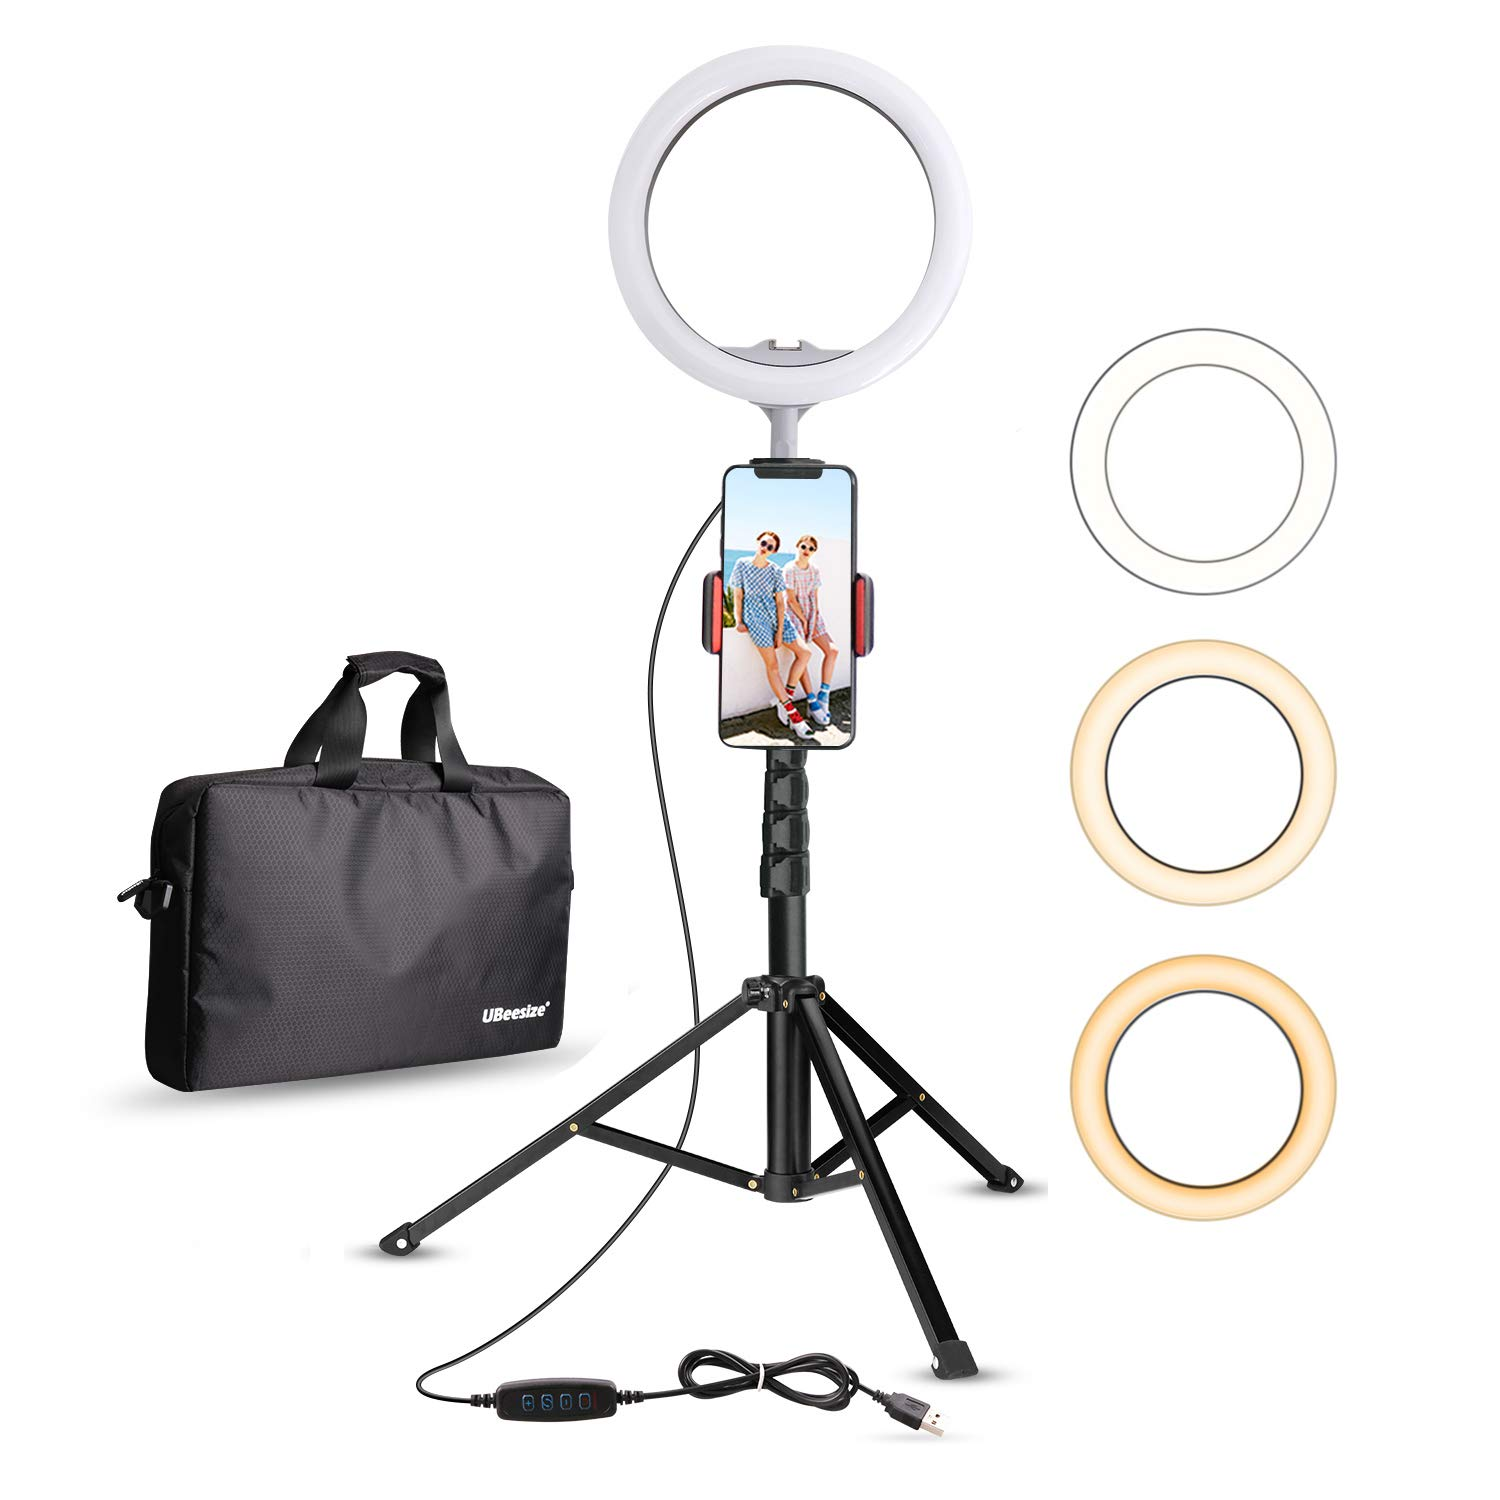 UBeesize 10.2'' Selfie Ring Light with Tripod Stand & Cell Phone Holder for Live Stream/Makeup, Mini Led Camera Ringlight for YouTube Video/Photography Compatible with iPhone Android